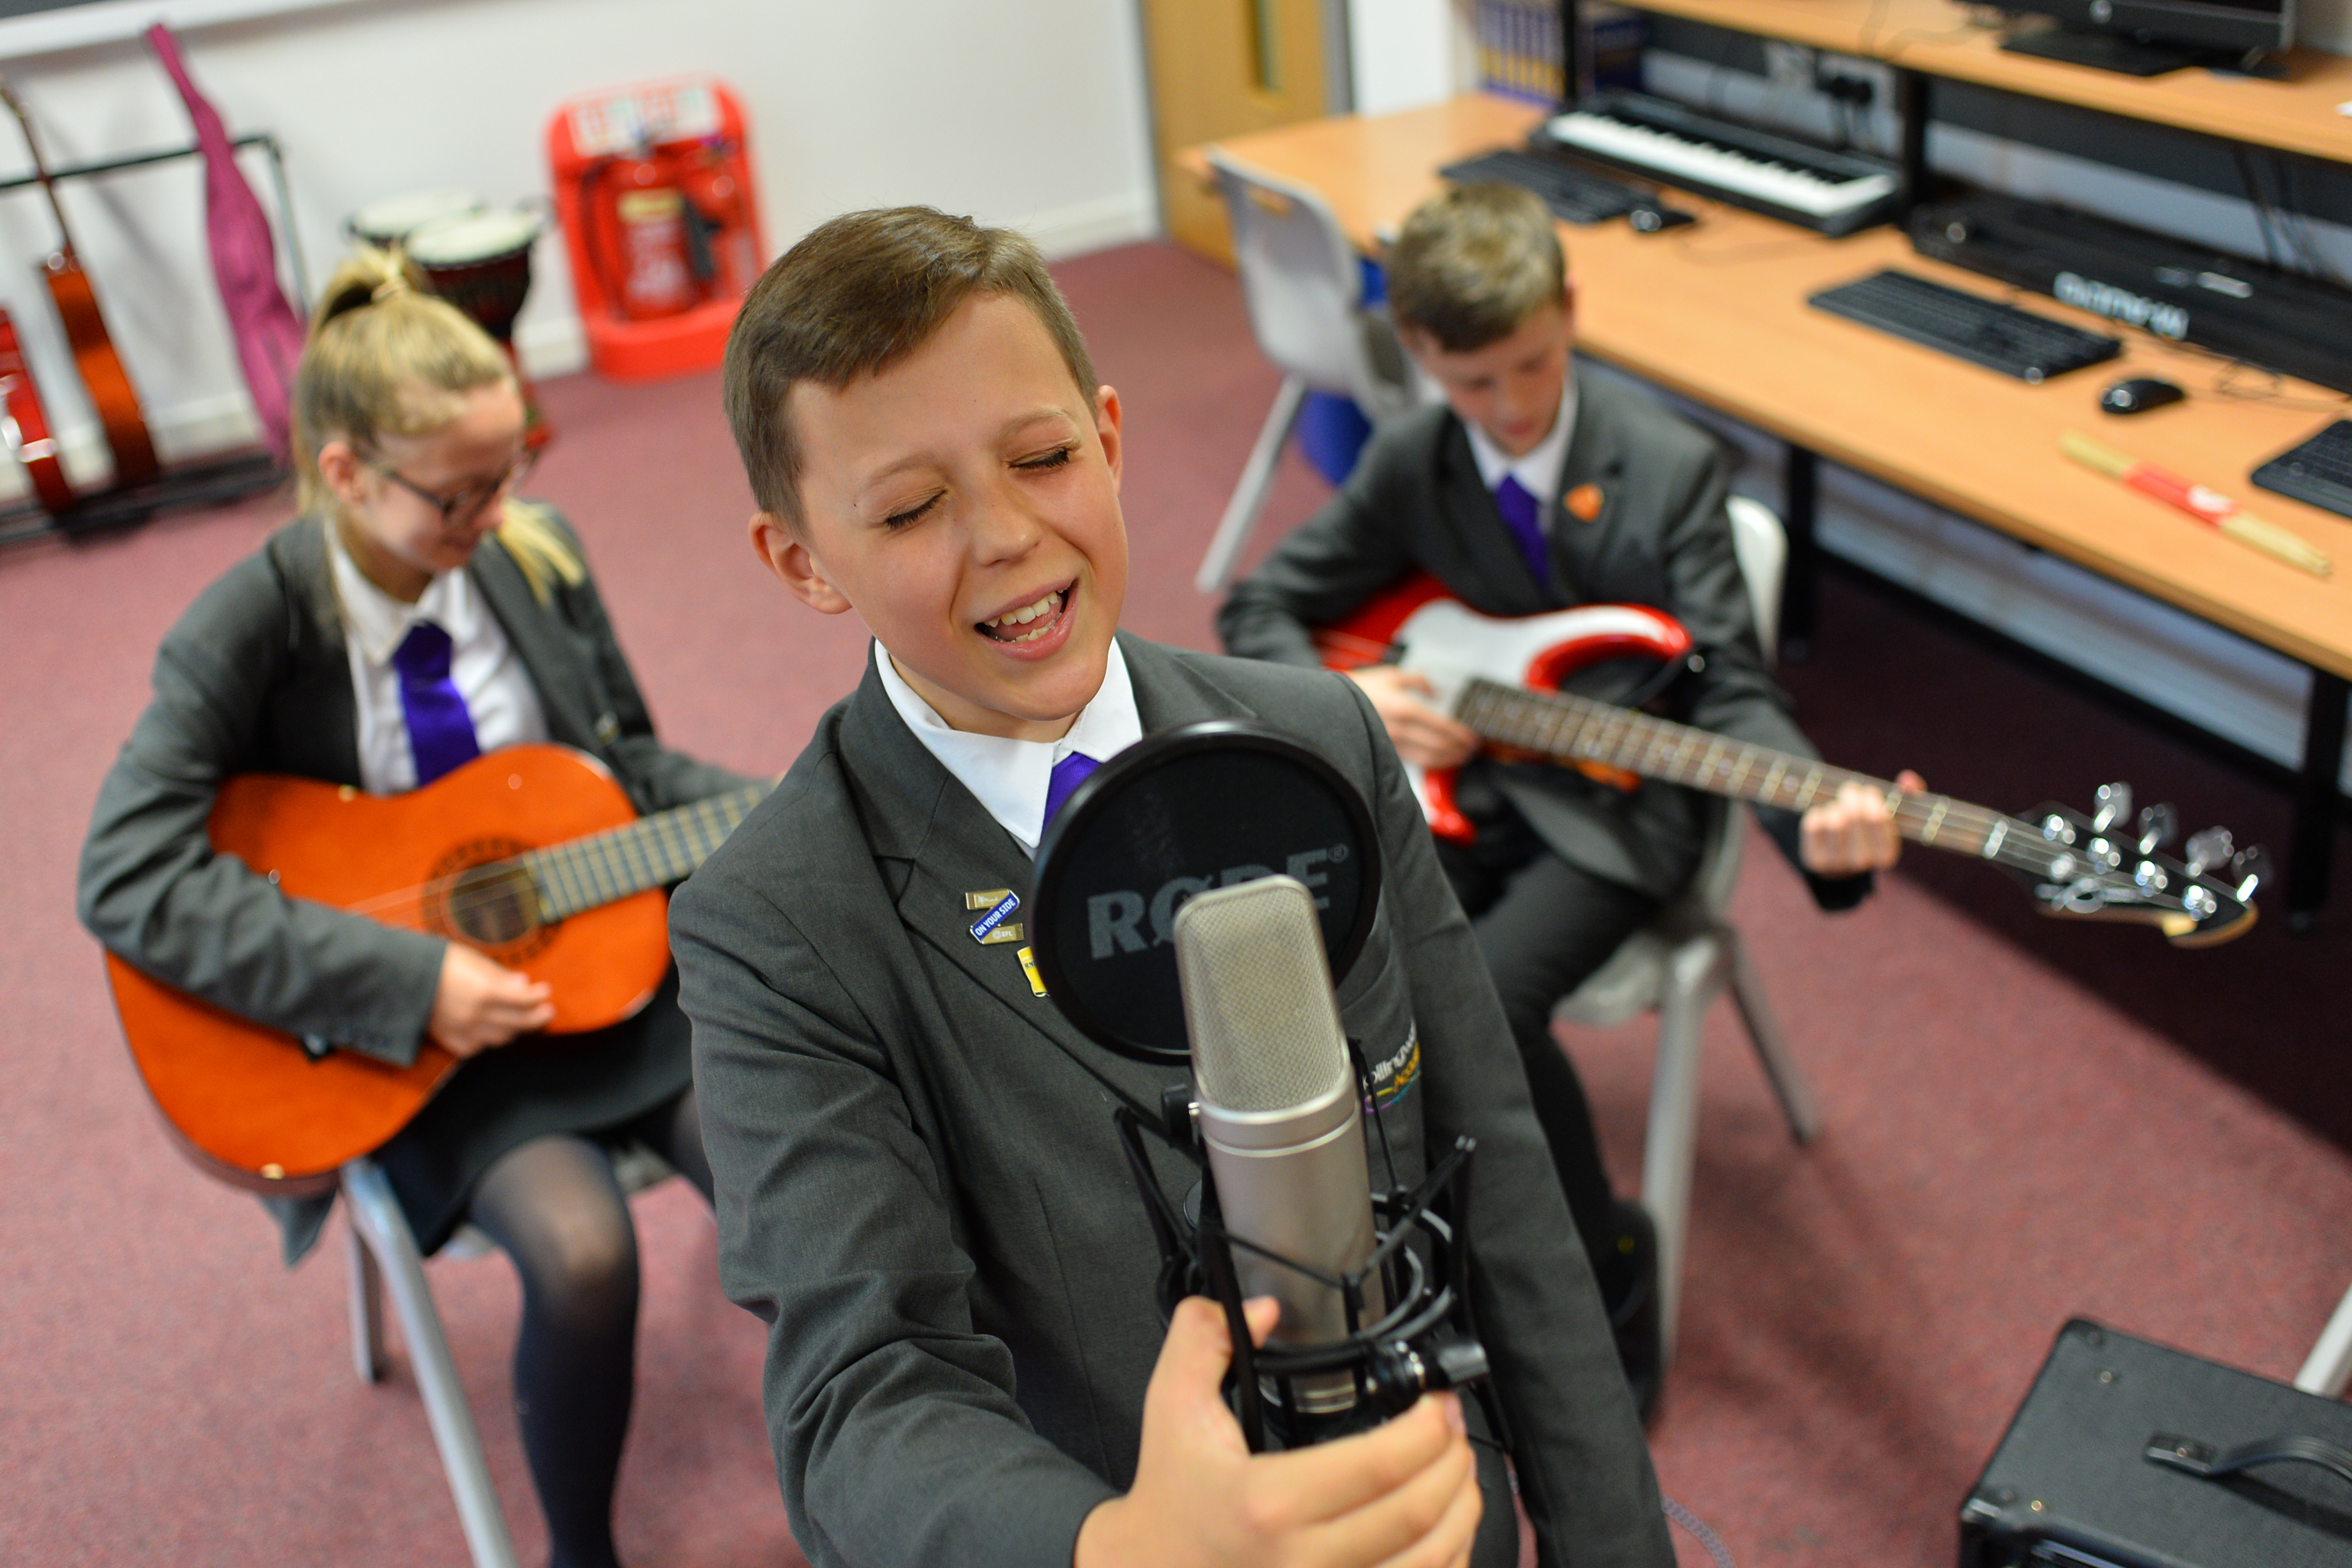 Make music the beating heart of your school